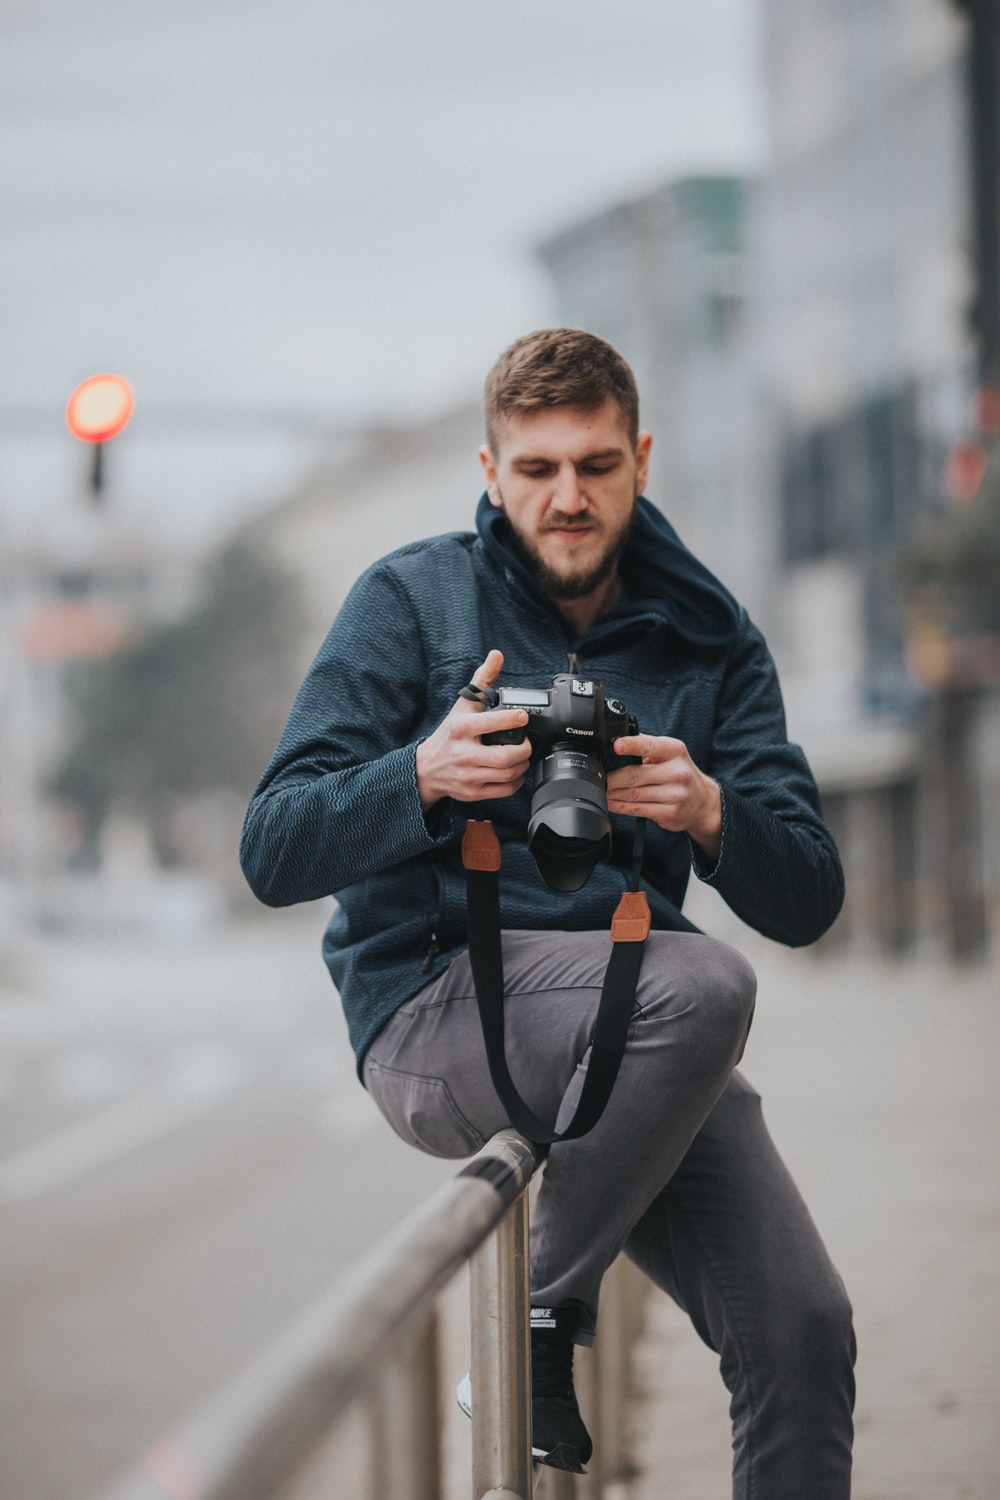 man sitting on gray railing while holding DSLR camera during daytime